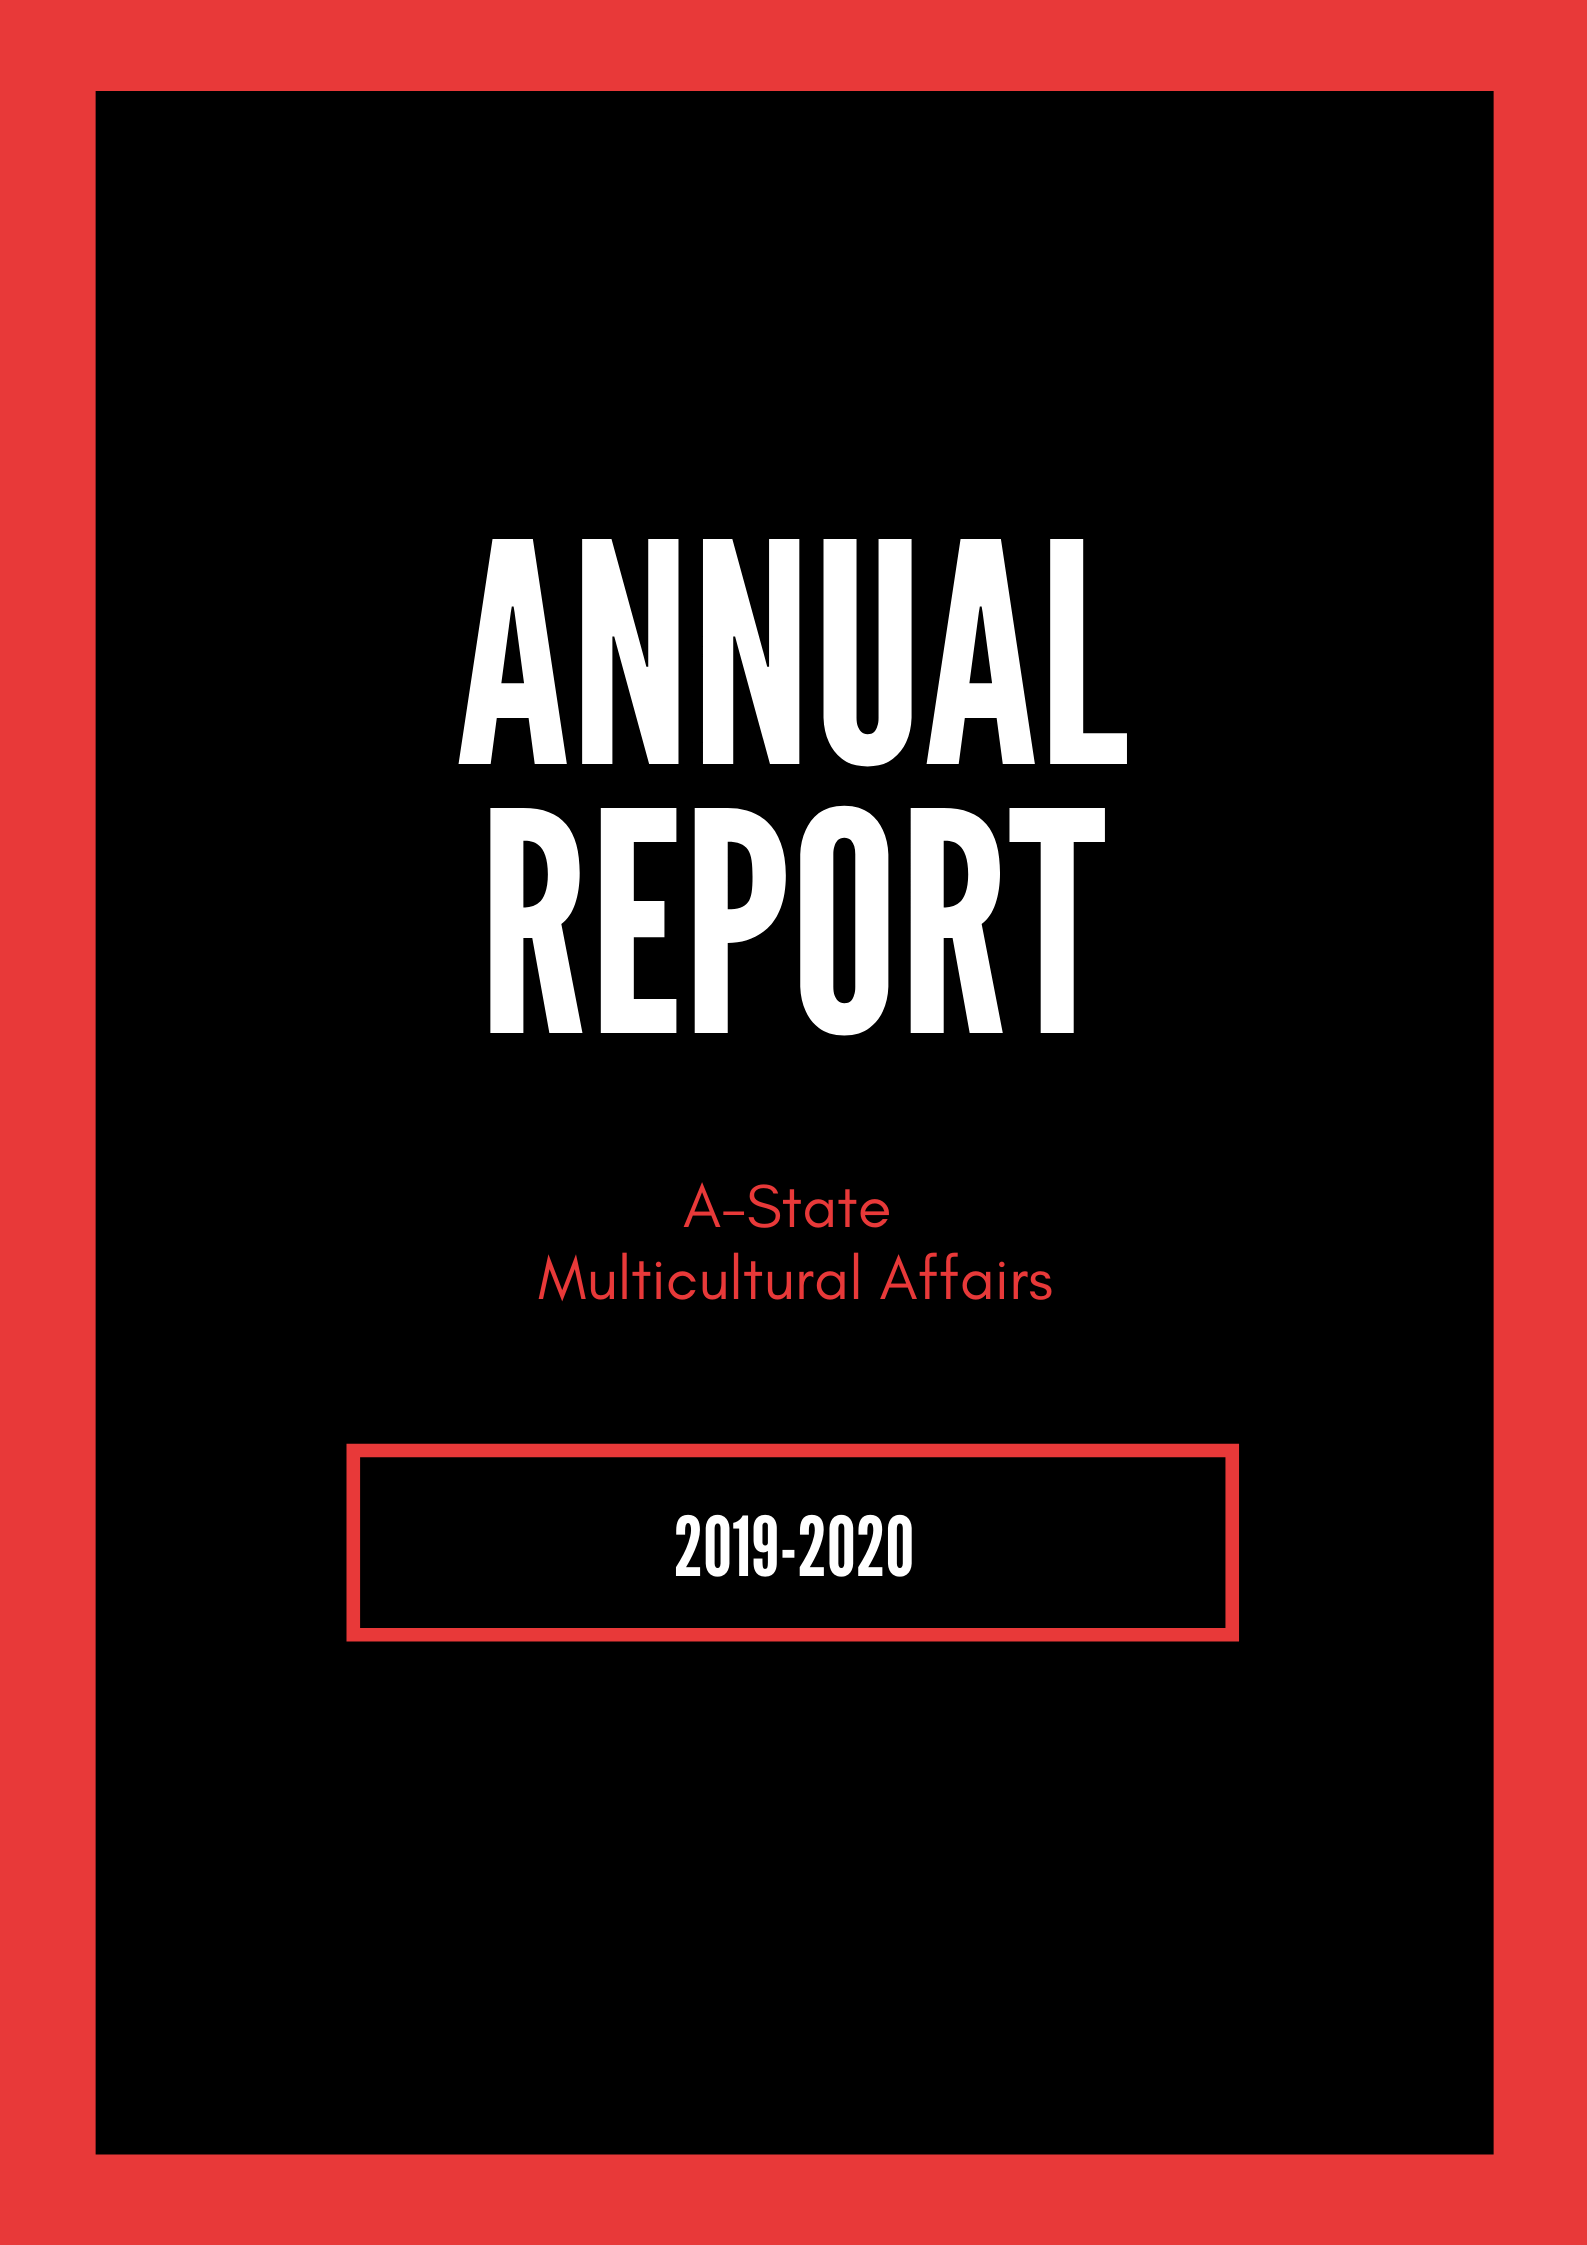 Annual Report Title Page